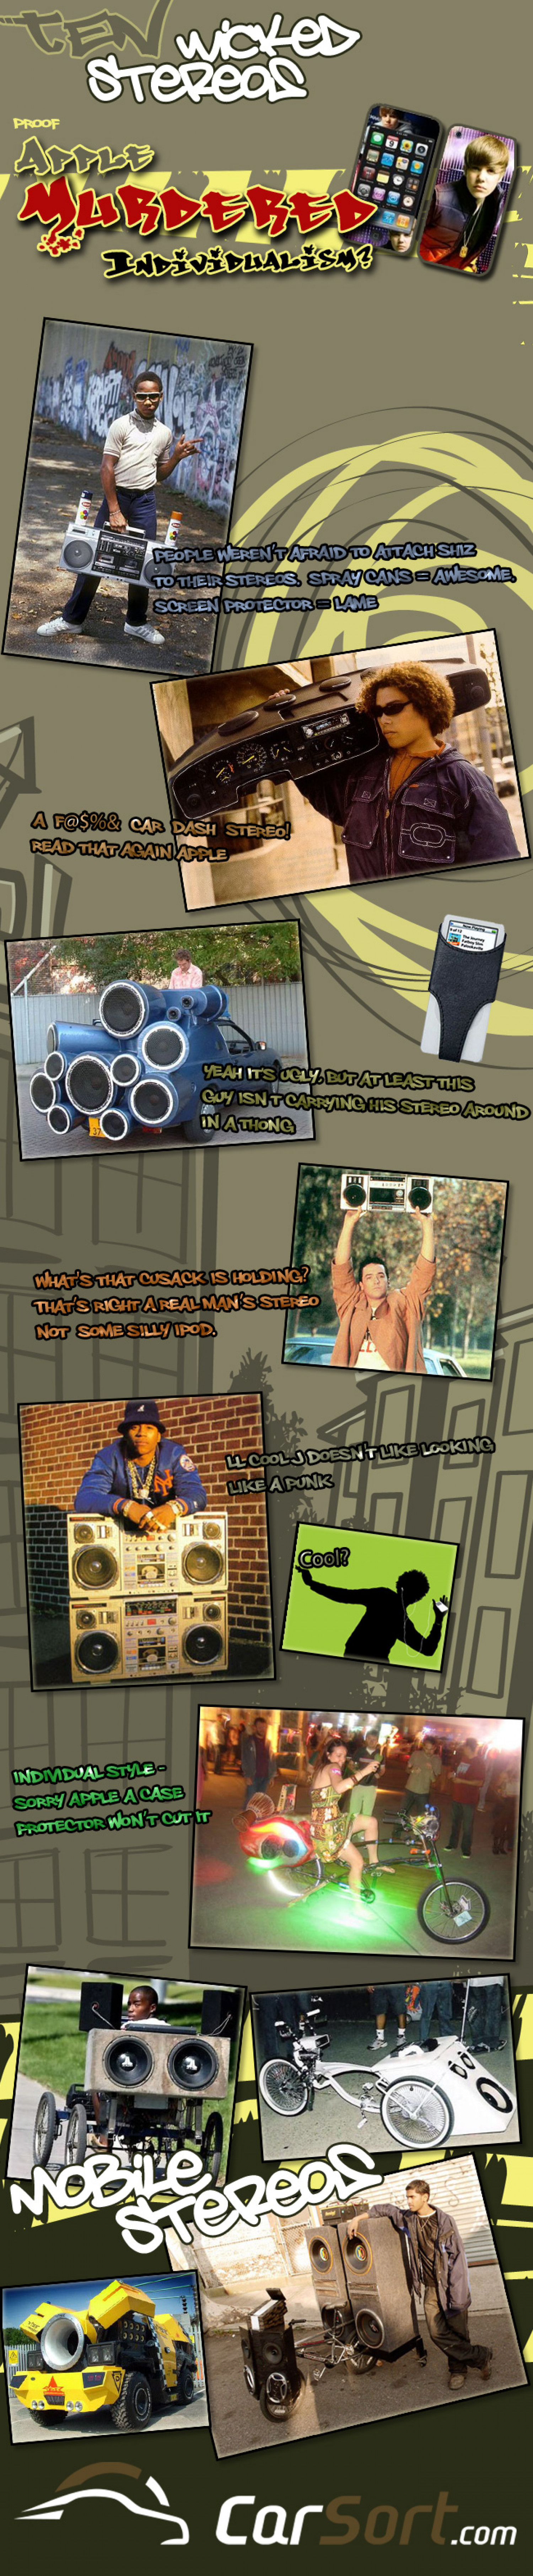 Ghetto Blasters & Apple's Manufactured Individualism Infographic